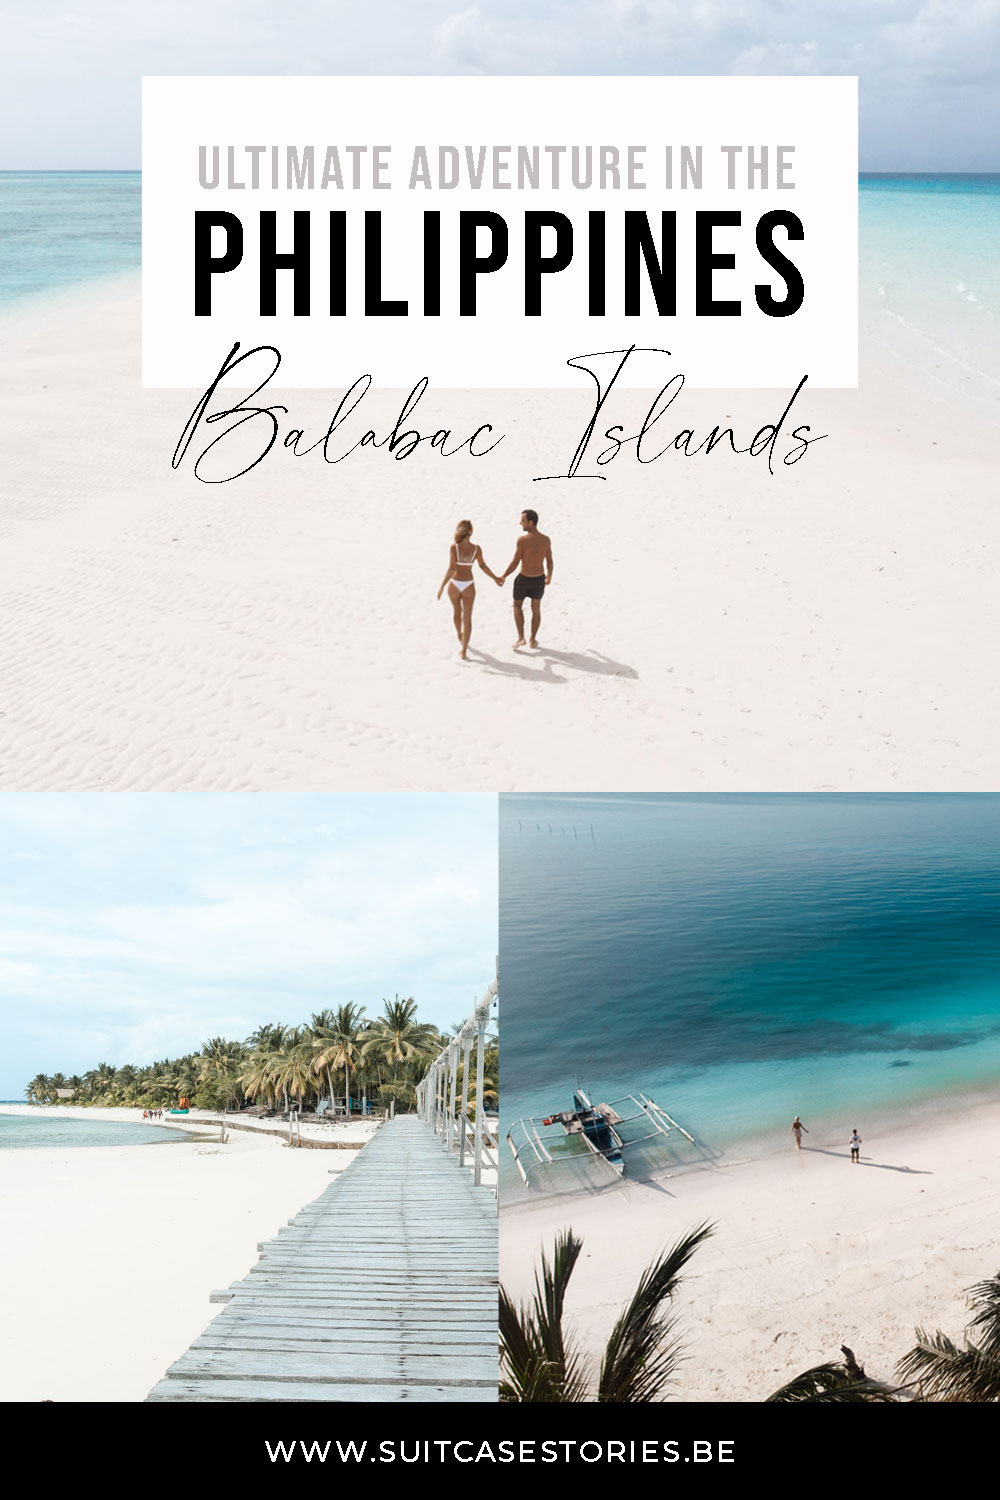 Balabac Palawan: the ultimate adventure in the Philippines